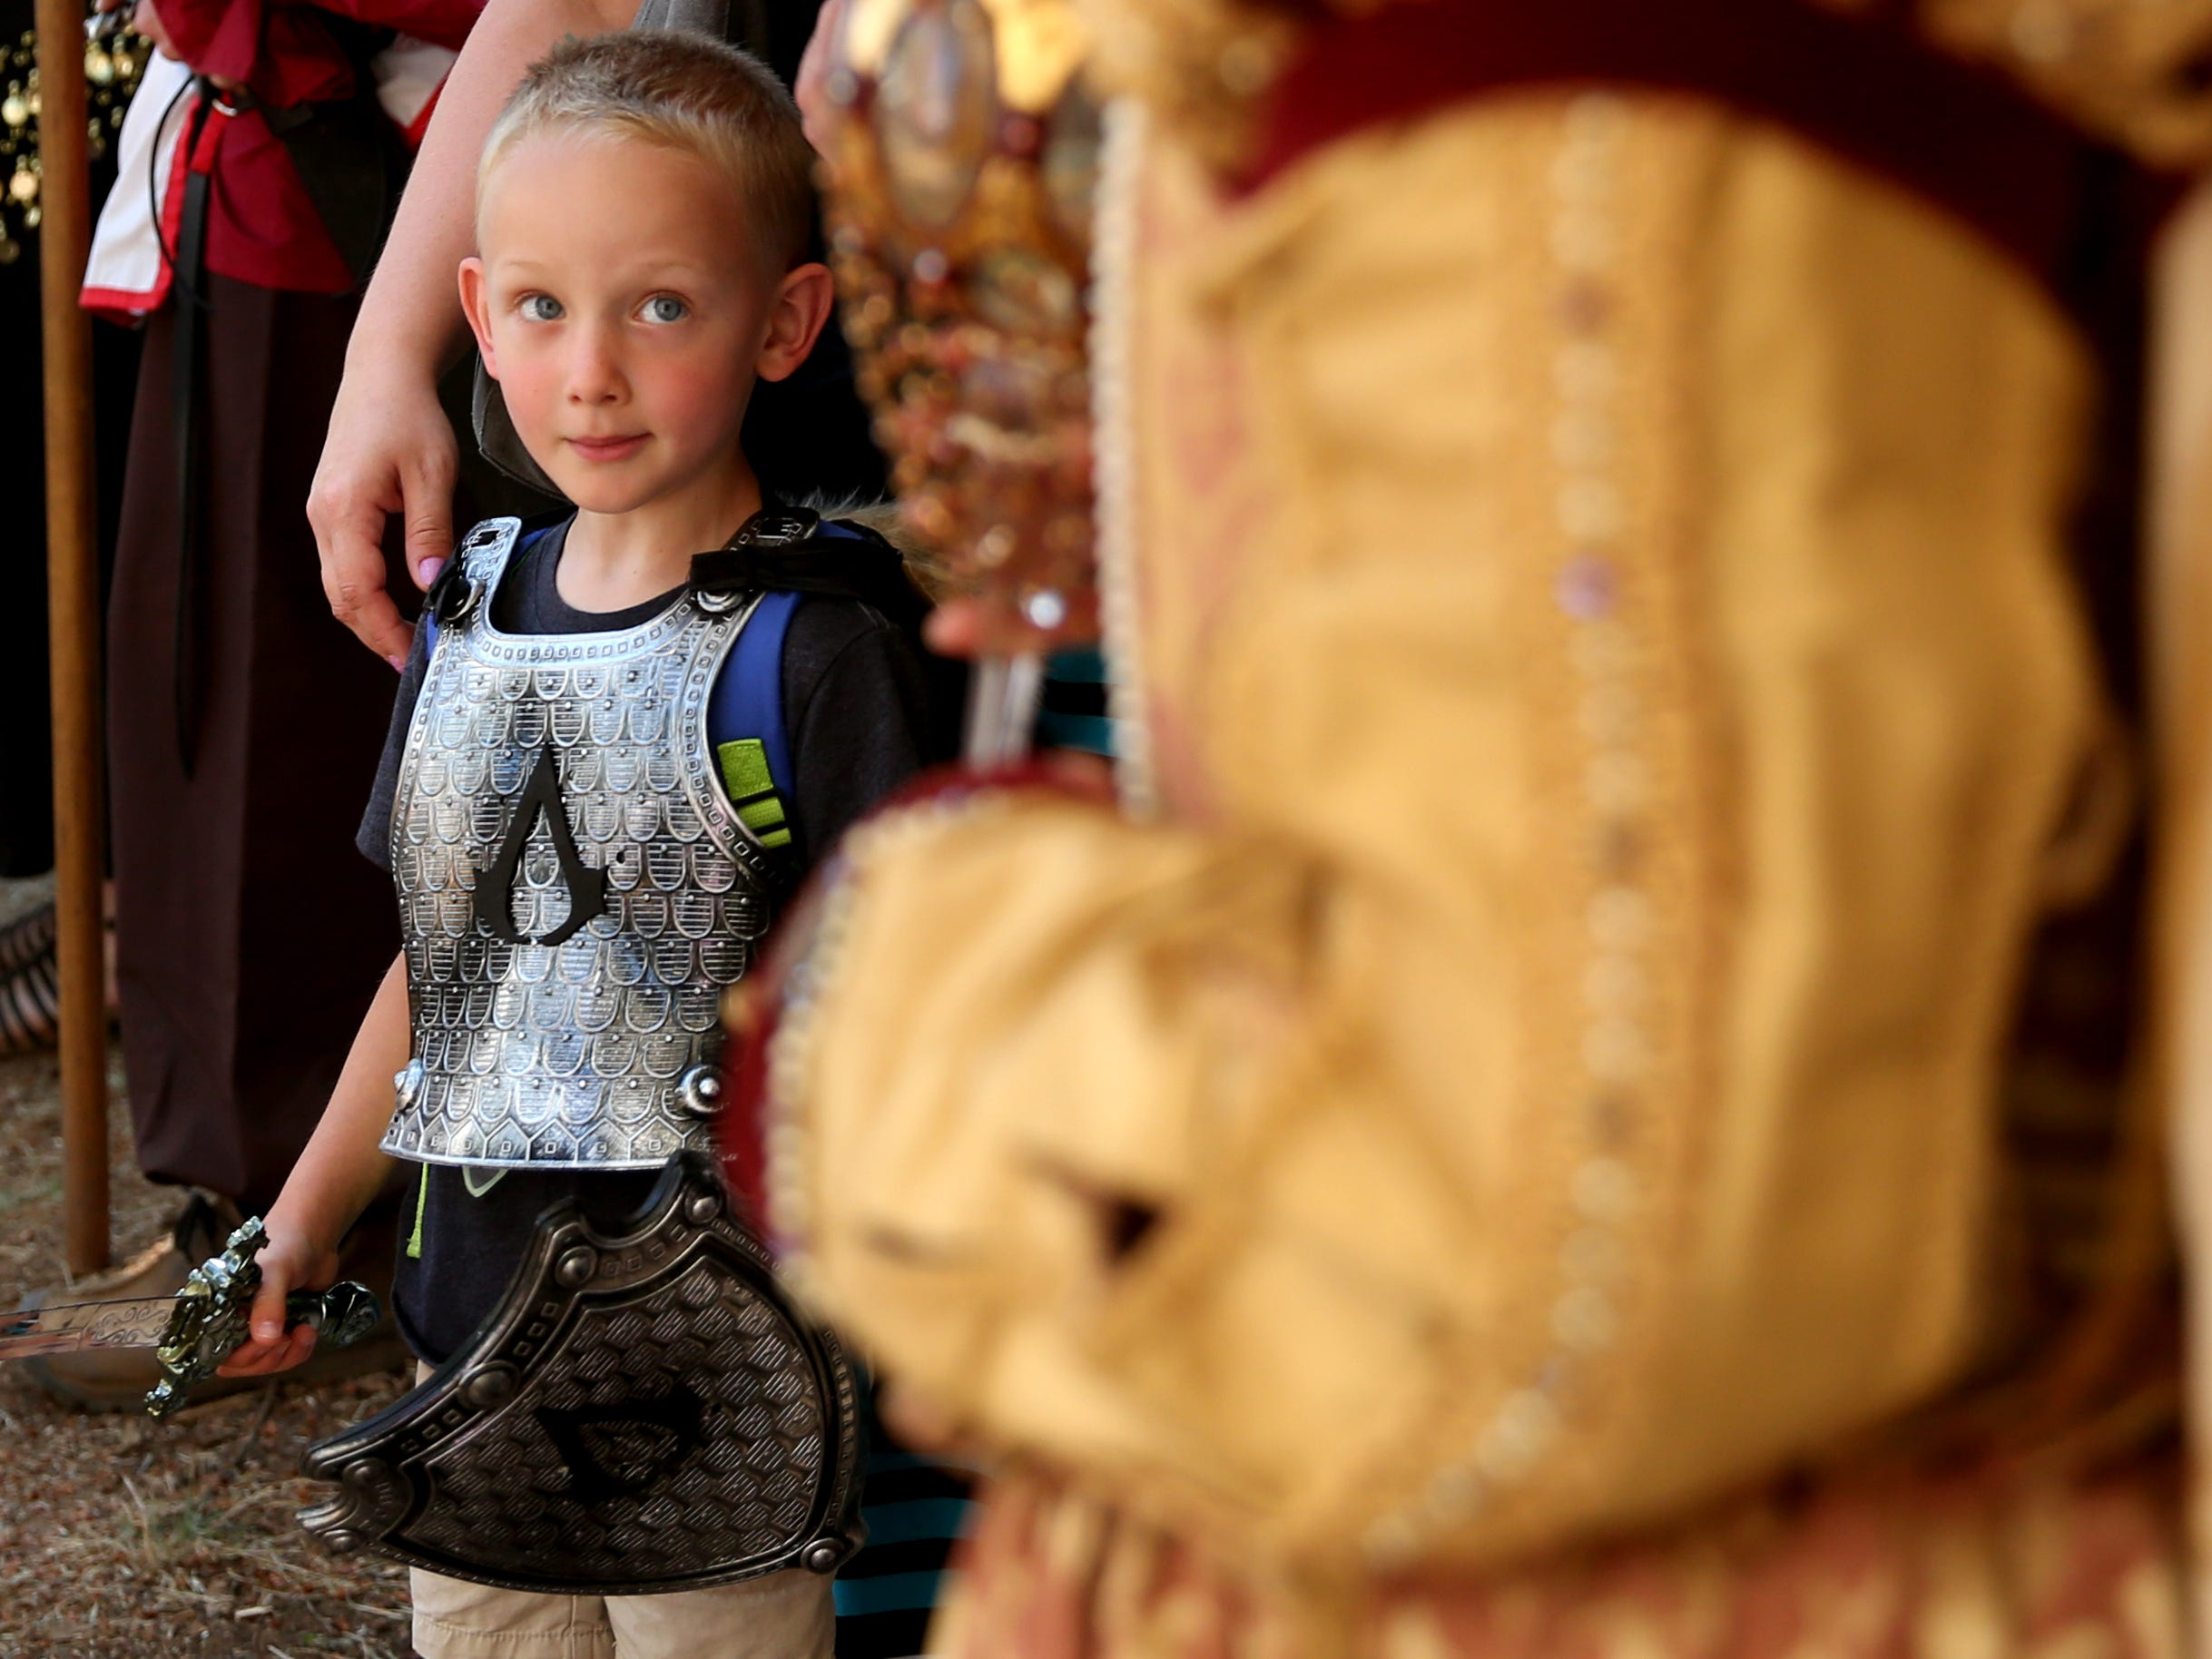 Cooper Redding, 5, of Oregon City, watches Alison White, of Wilsonville, as Queen Elizabeth I, during the Canterbury Renaissance Faire near Silverton on Saturday, July 21, 2018. The faire continues July 22, 28 and 29.